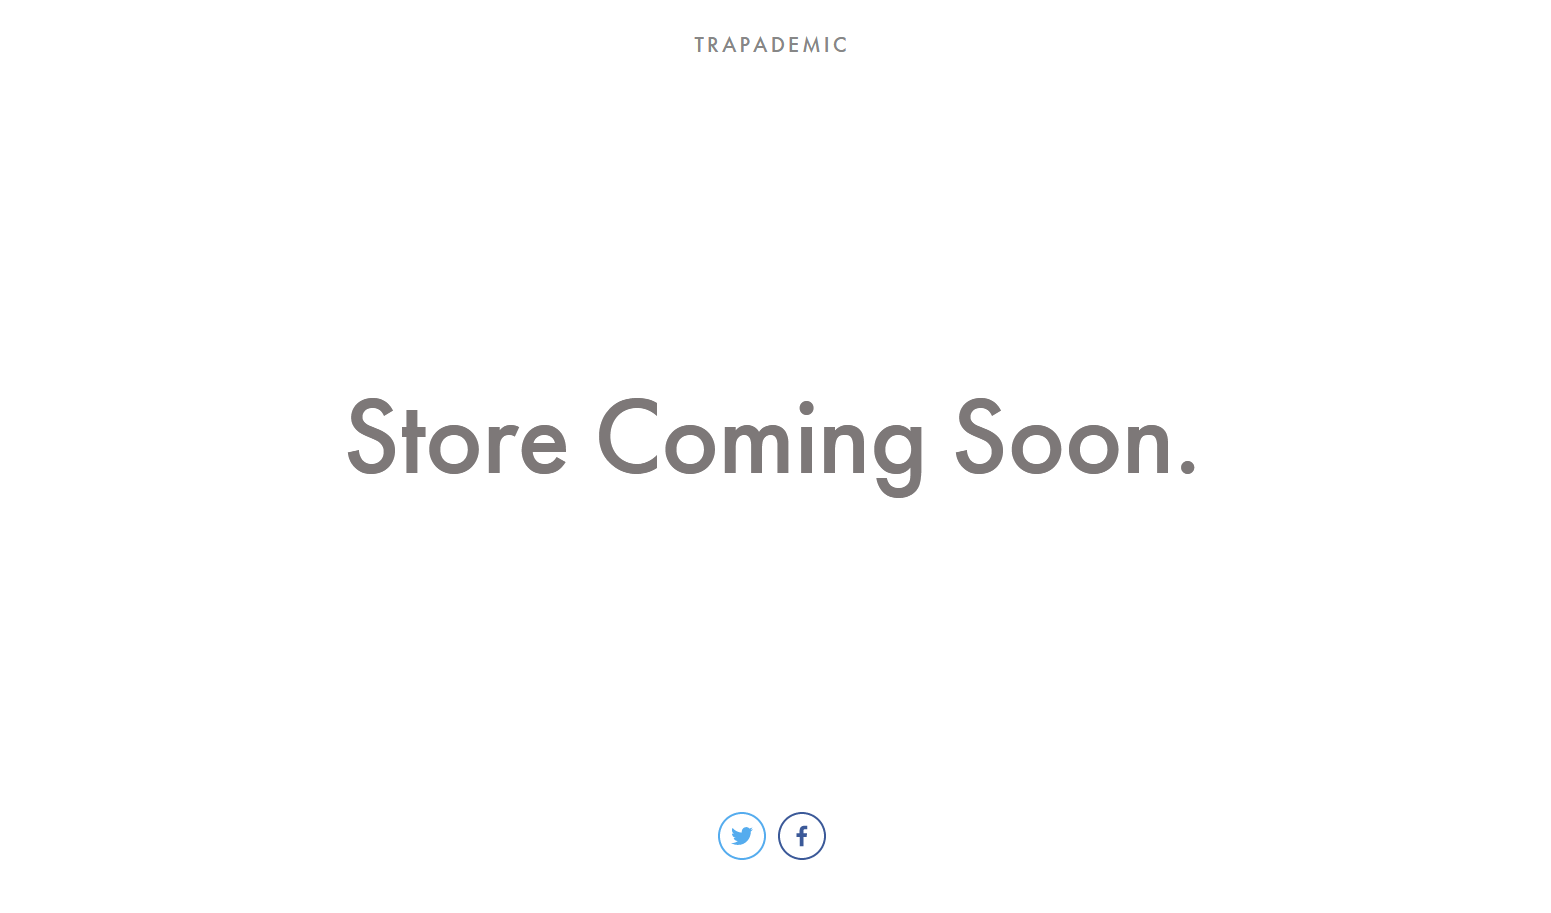 Screenshot-2017-10-27 Store — Trapademic.png